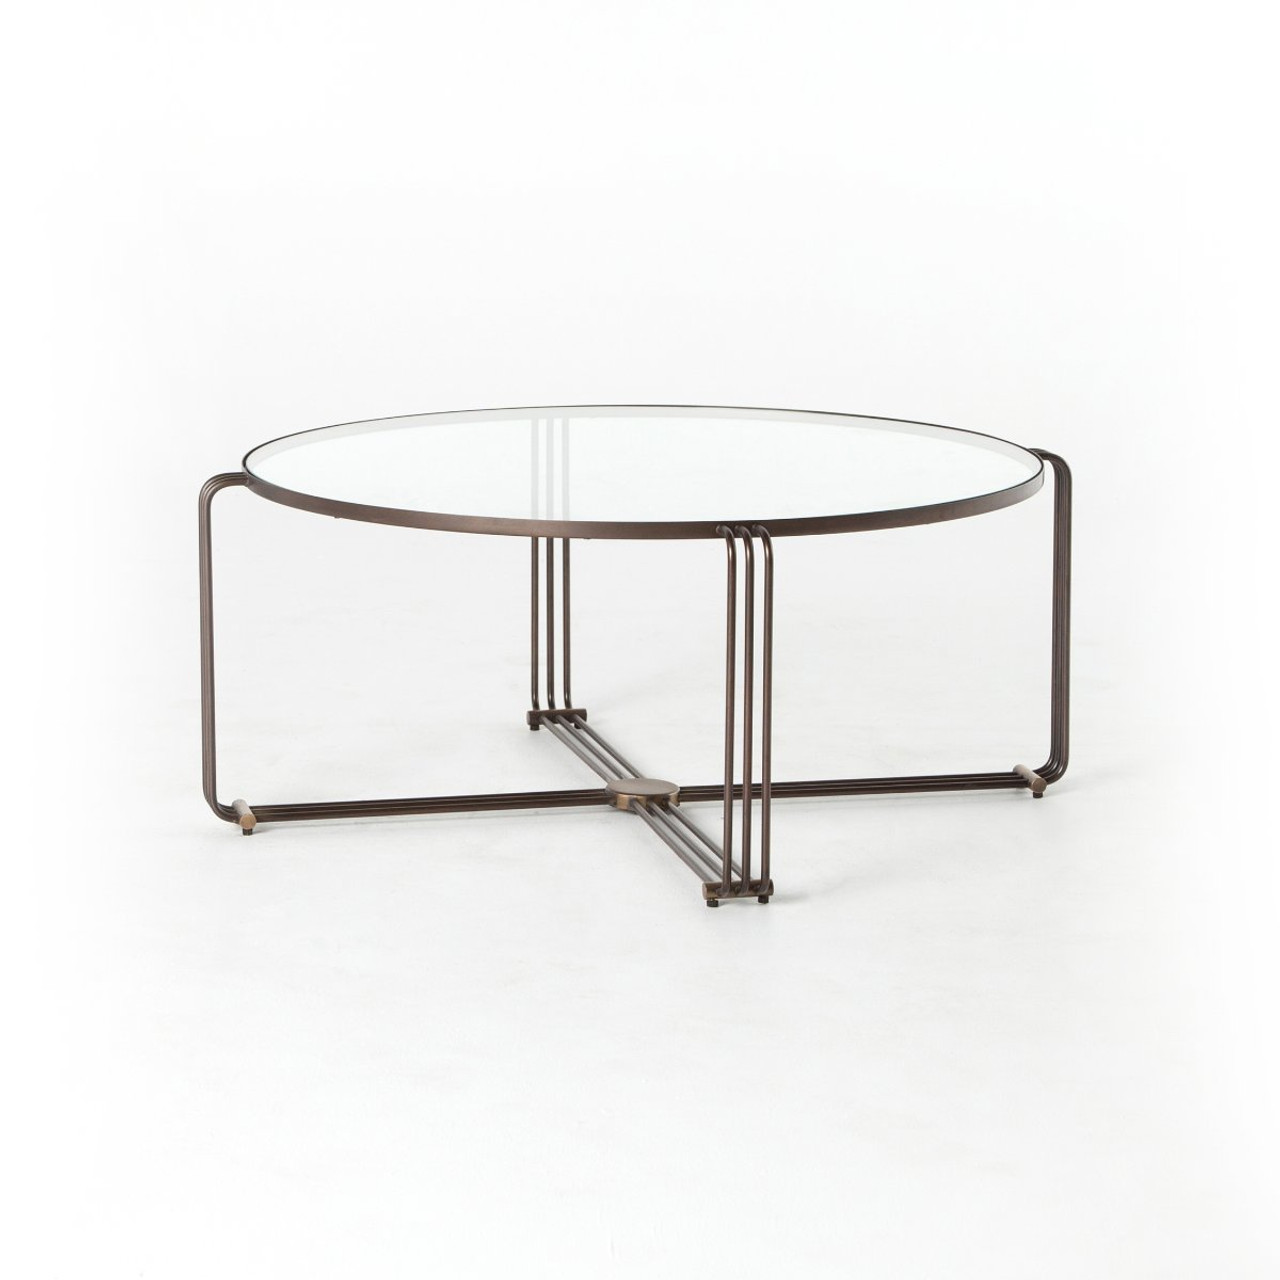 Awesome London Round Glass Top Coffee Table 40 Machost Co Dining Chair Design Ideas Machostcouk